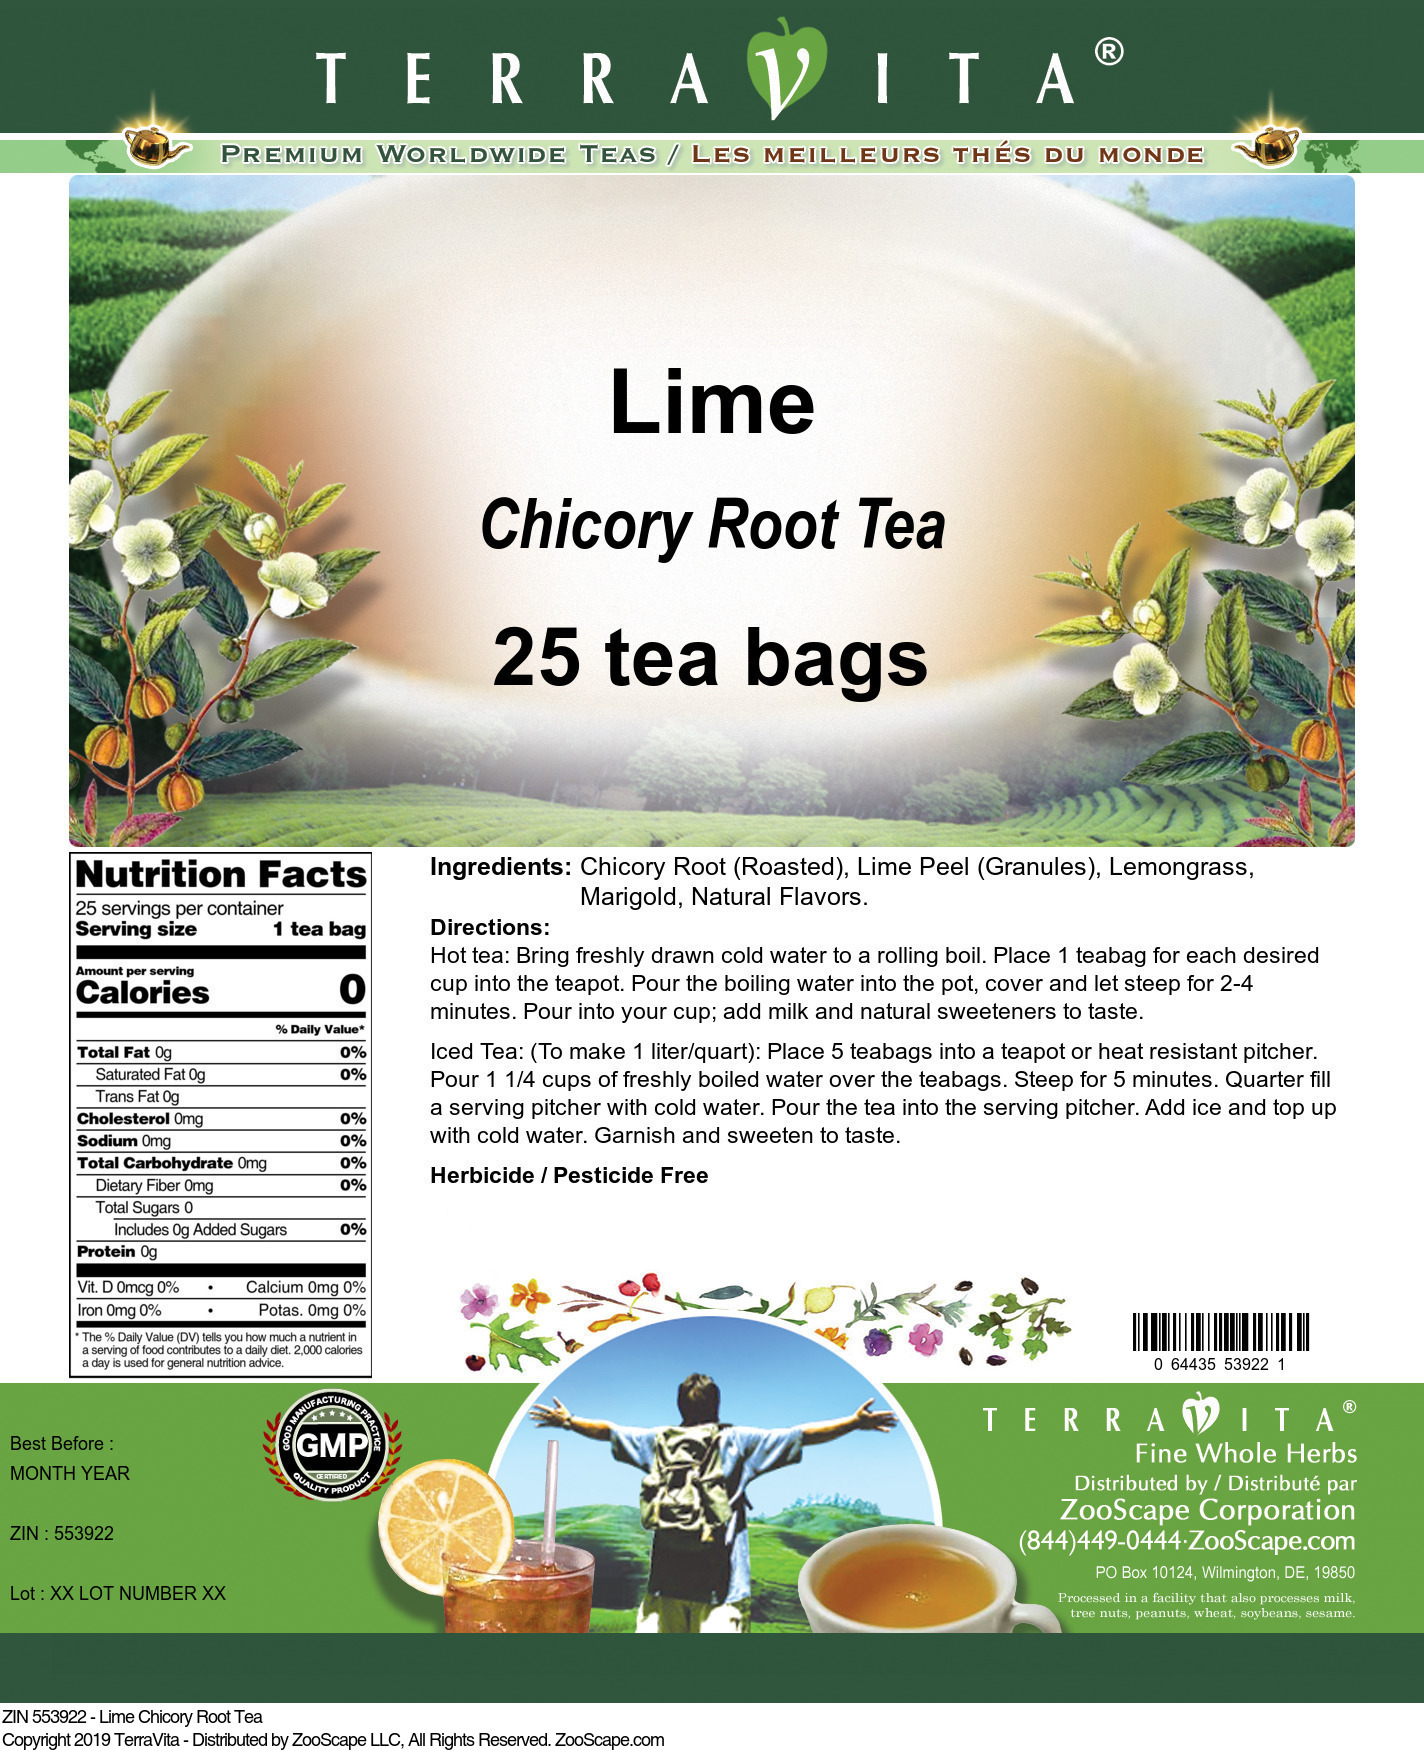 Lime Chicory Root